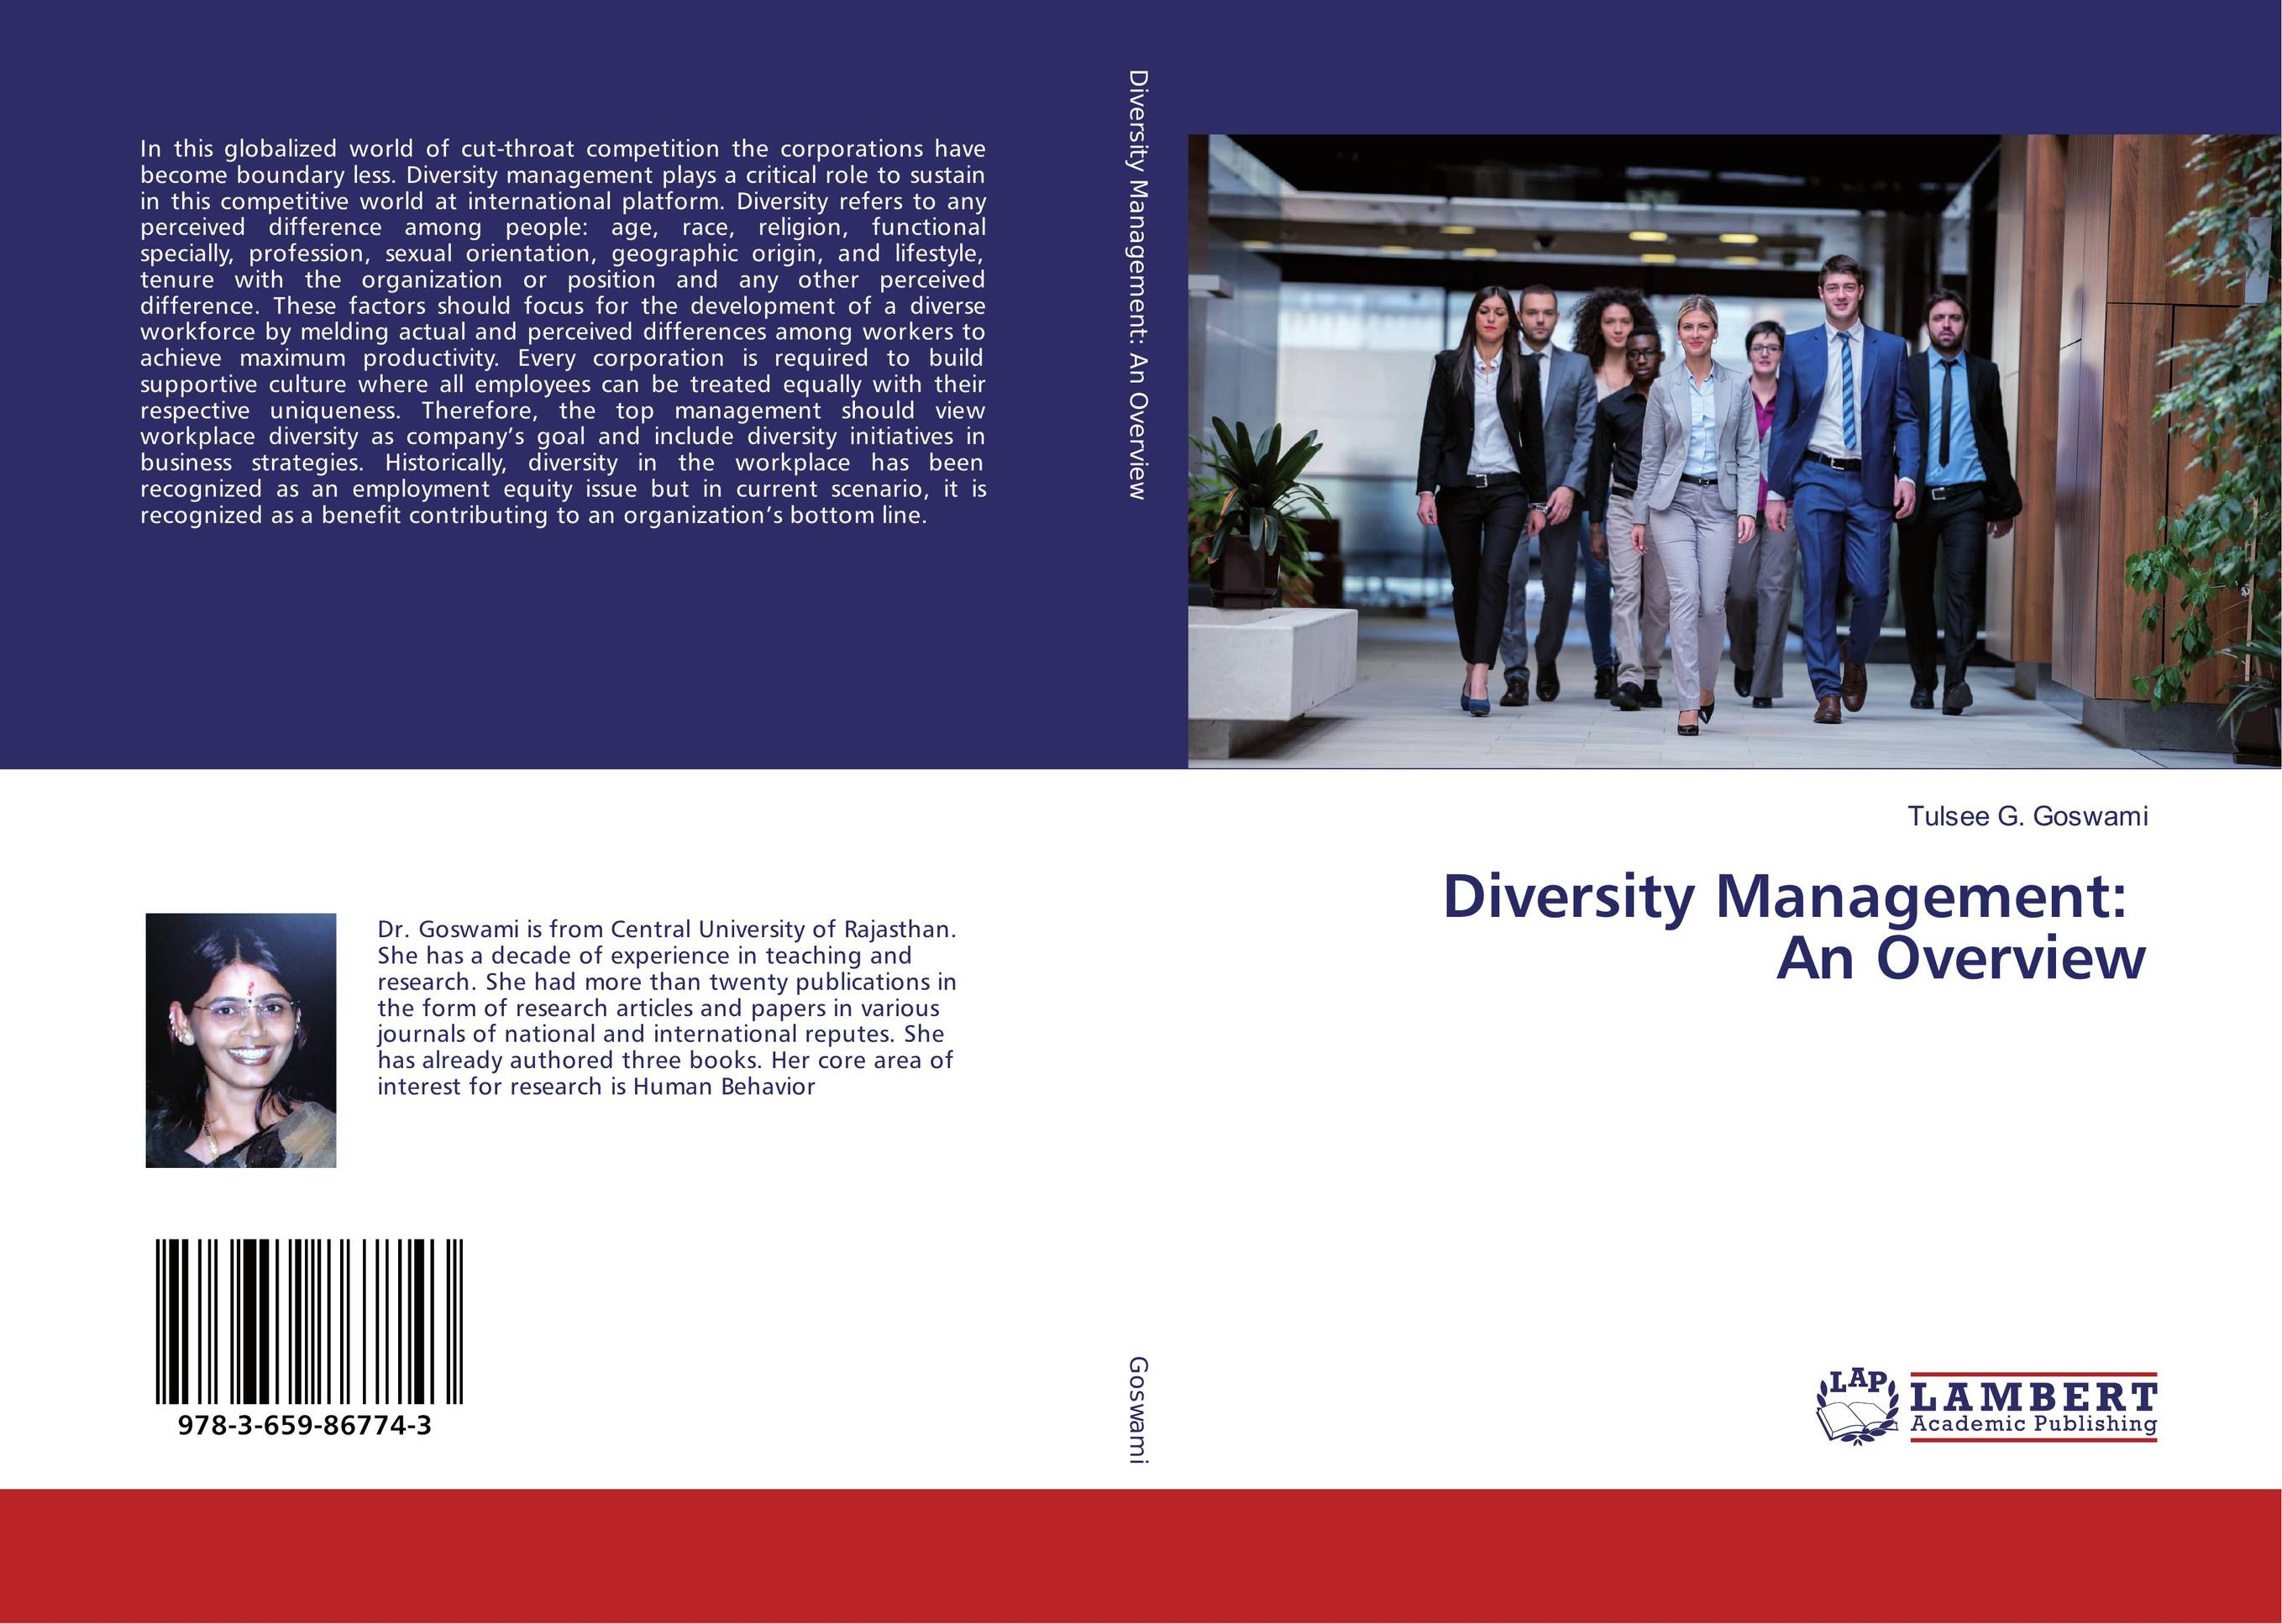 Diversity Management: An Overview